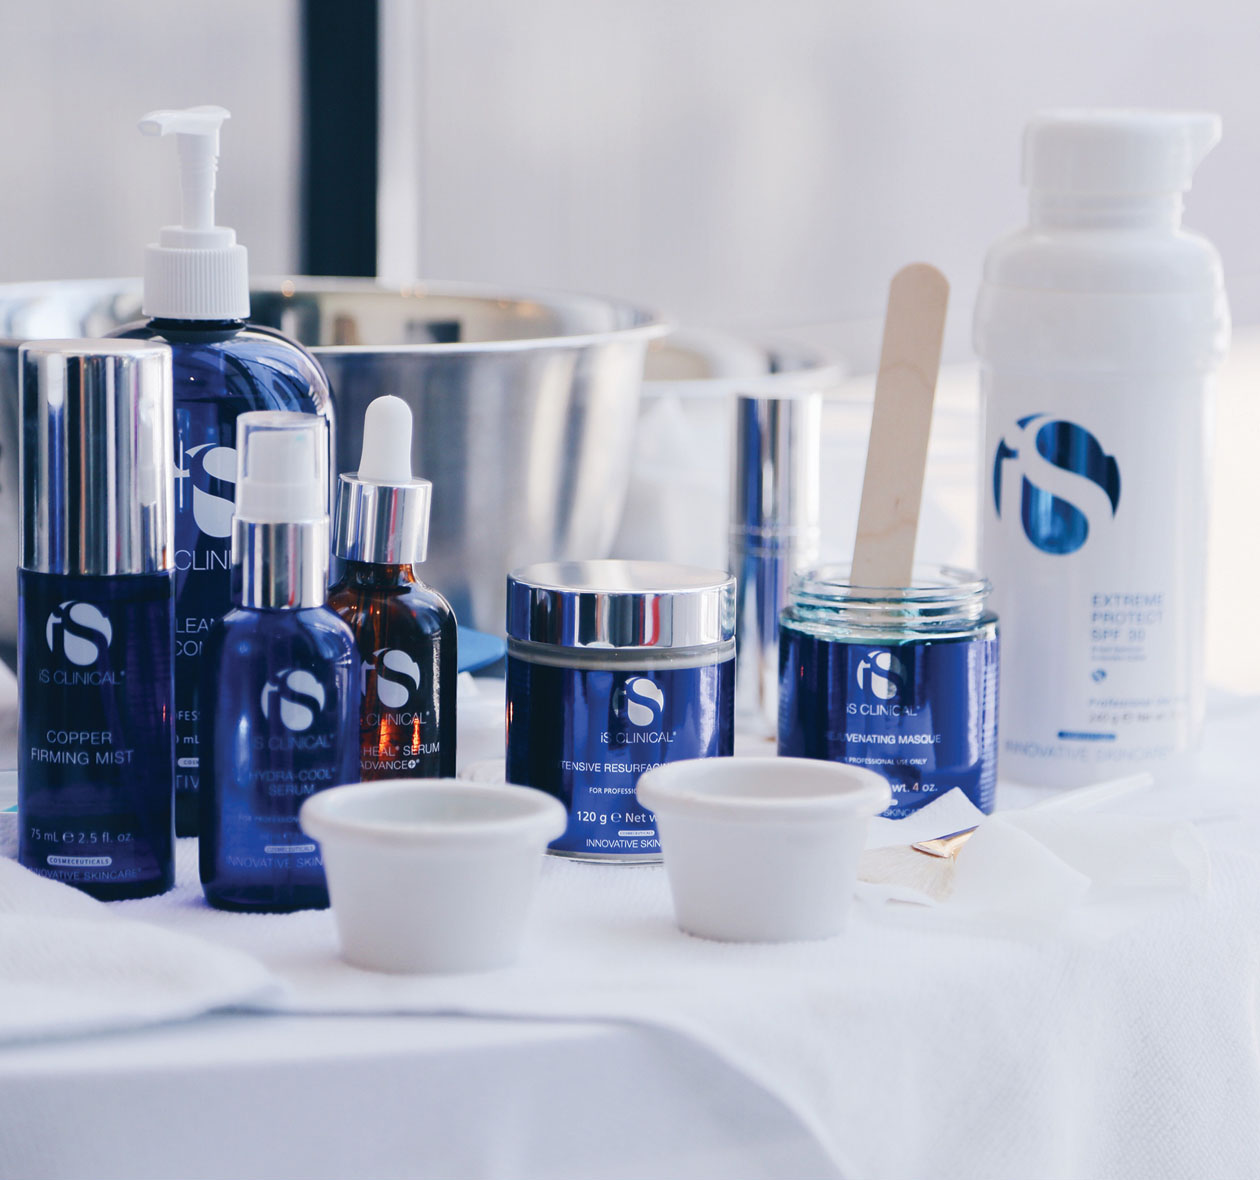 iS Clinical Beauty Products